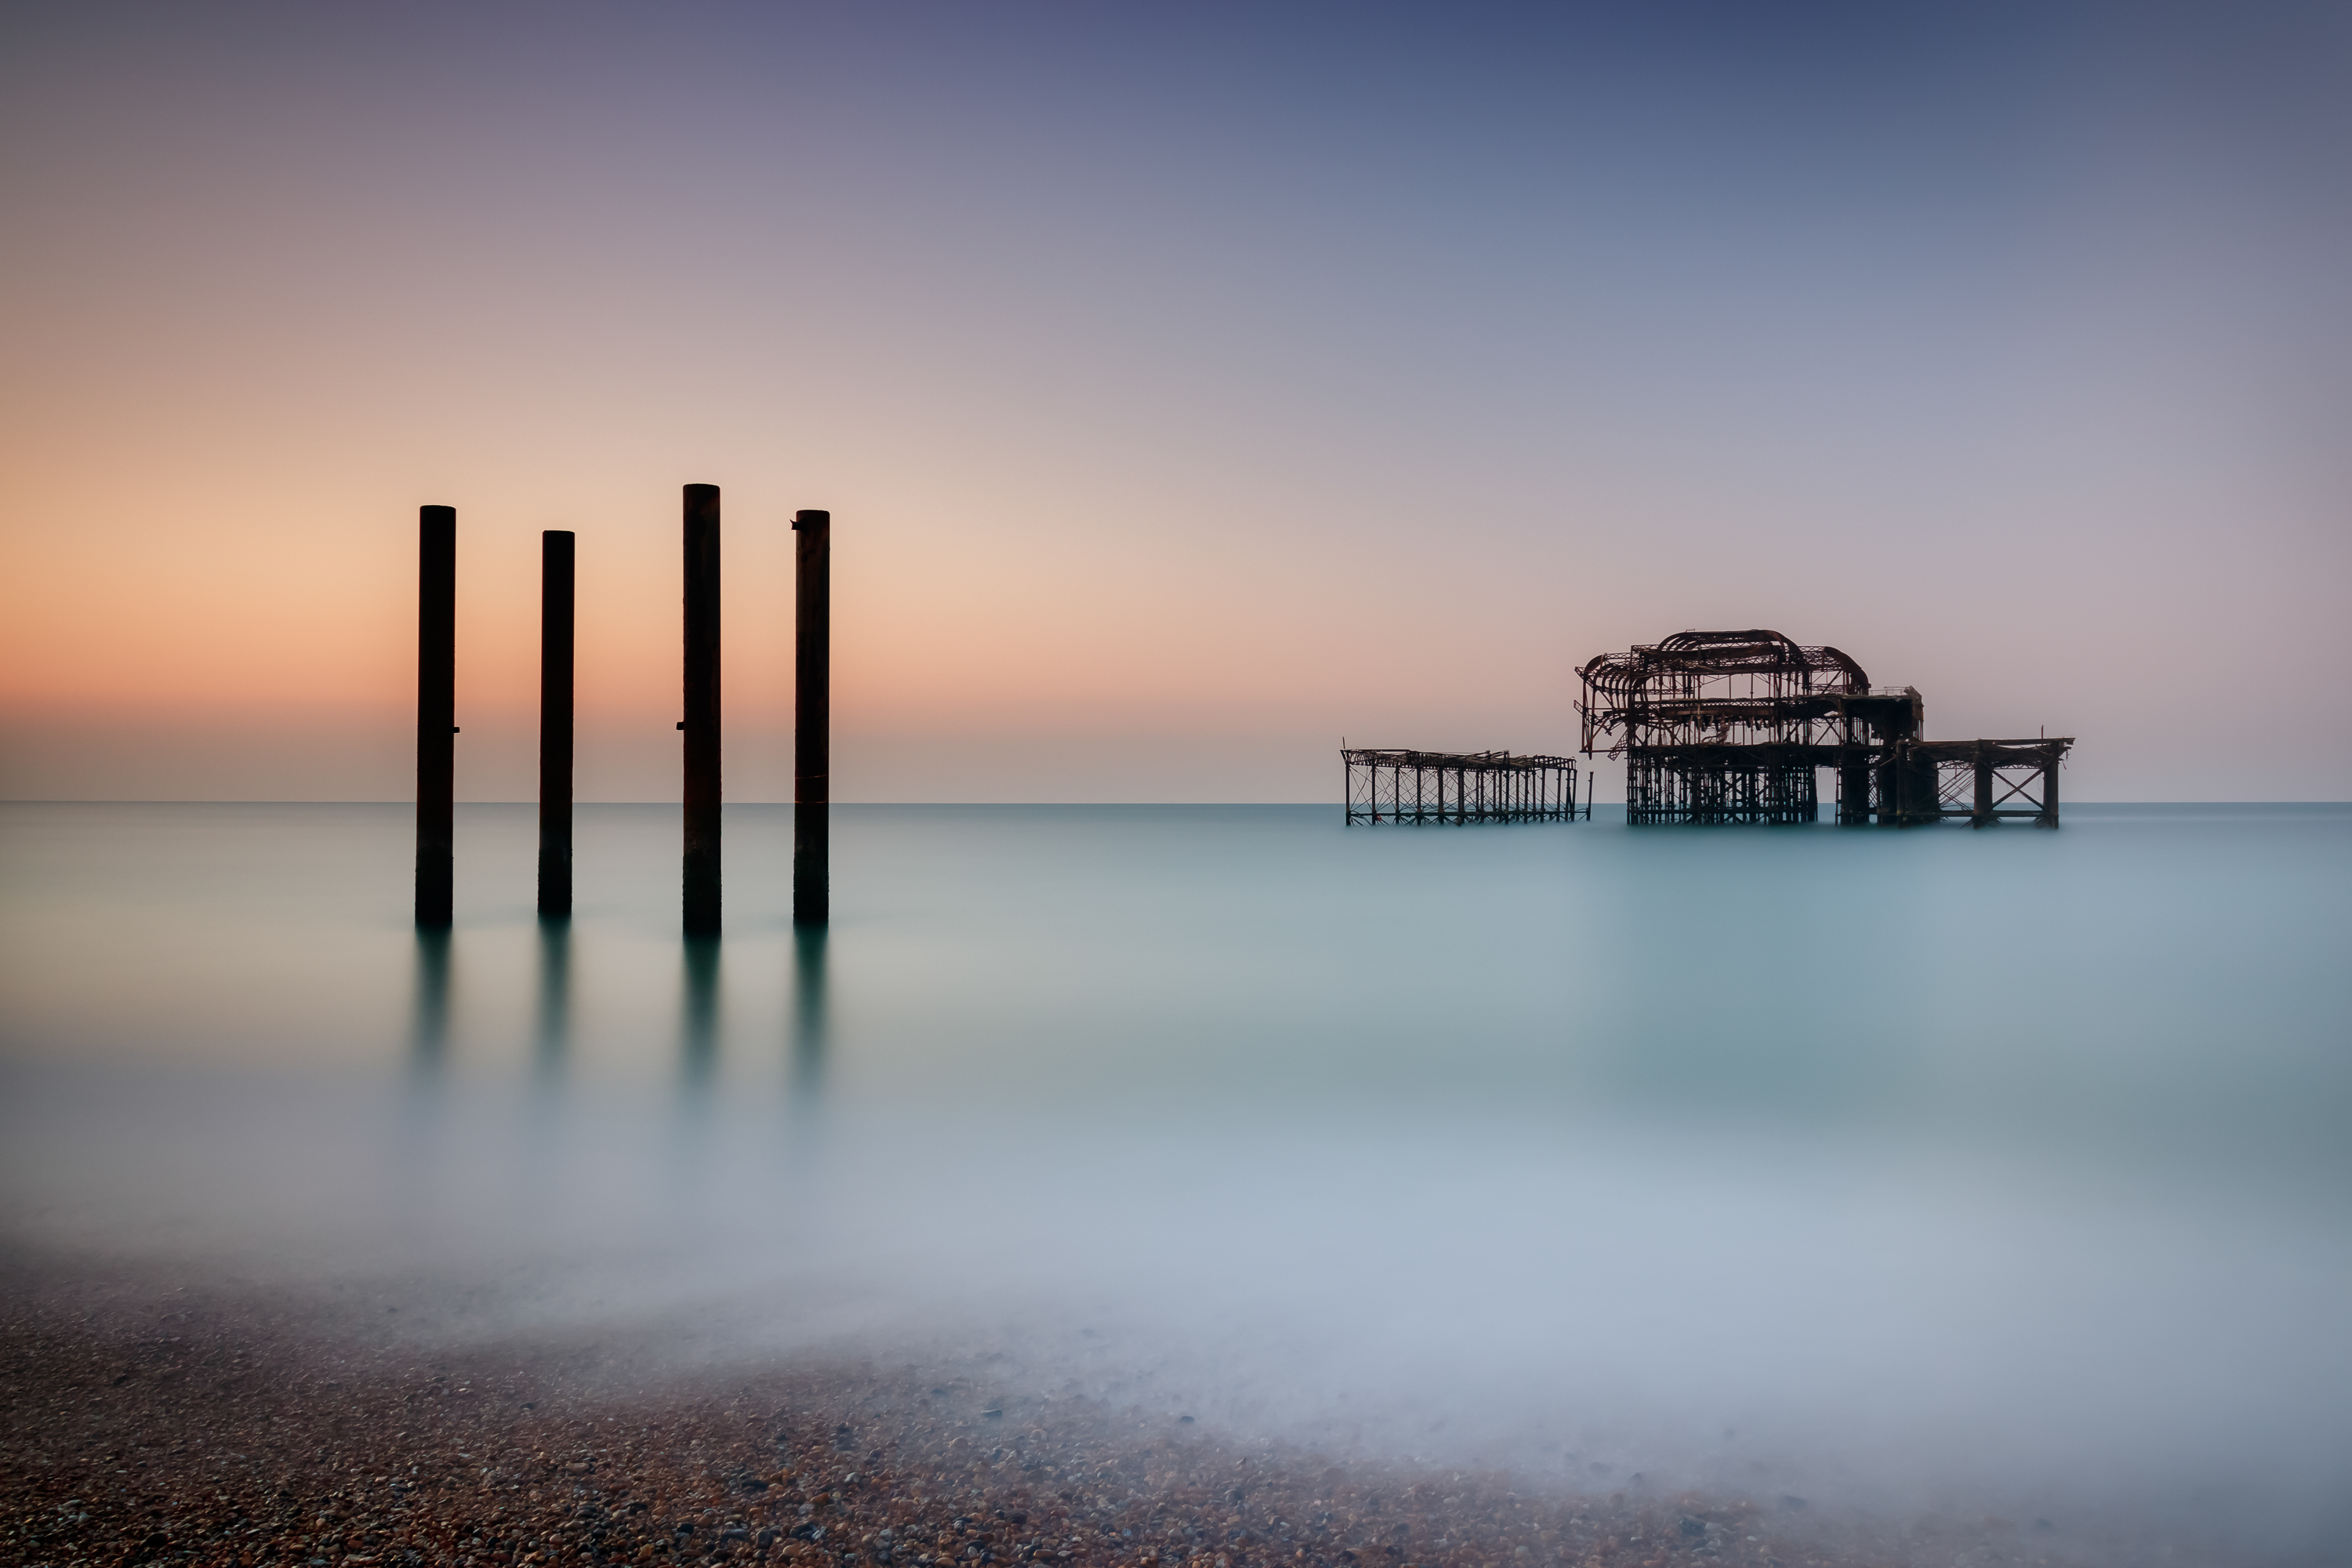 Sunrise at West Pier (Brighton)